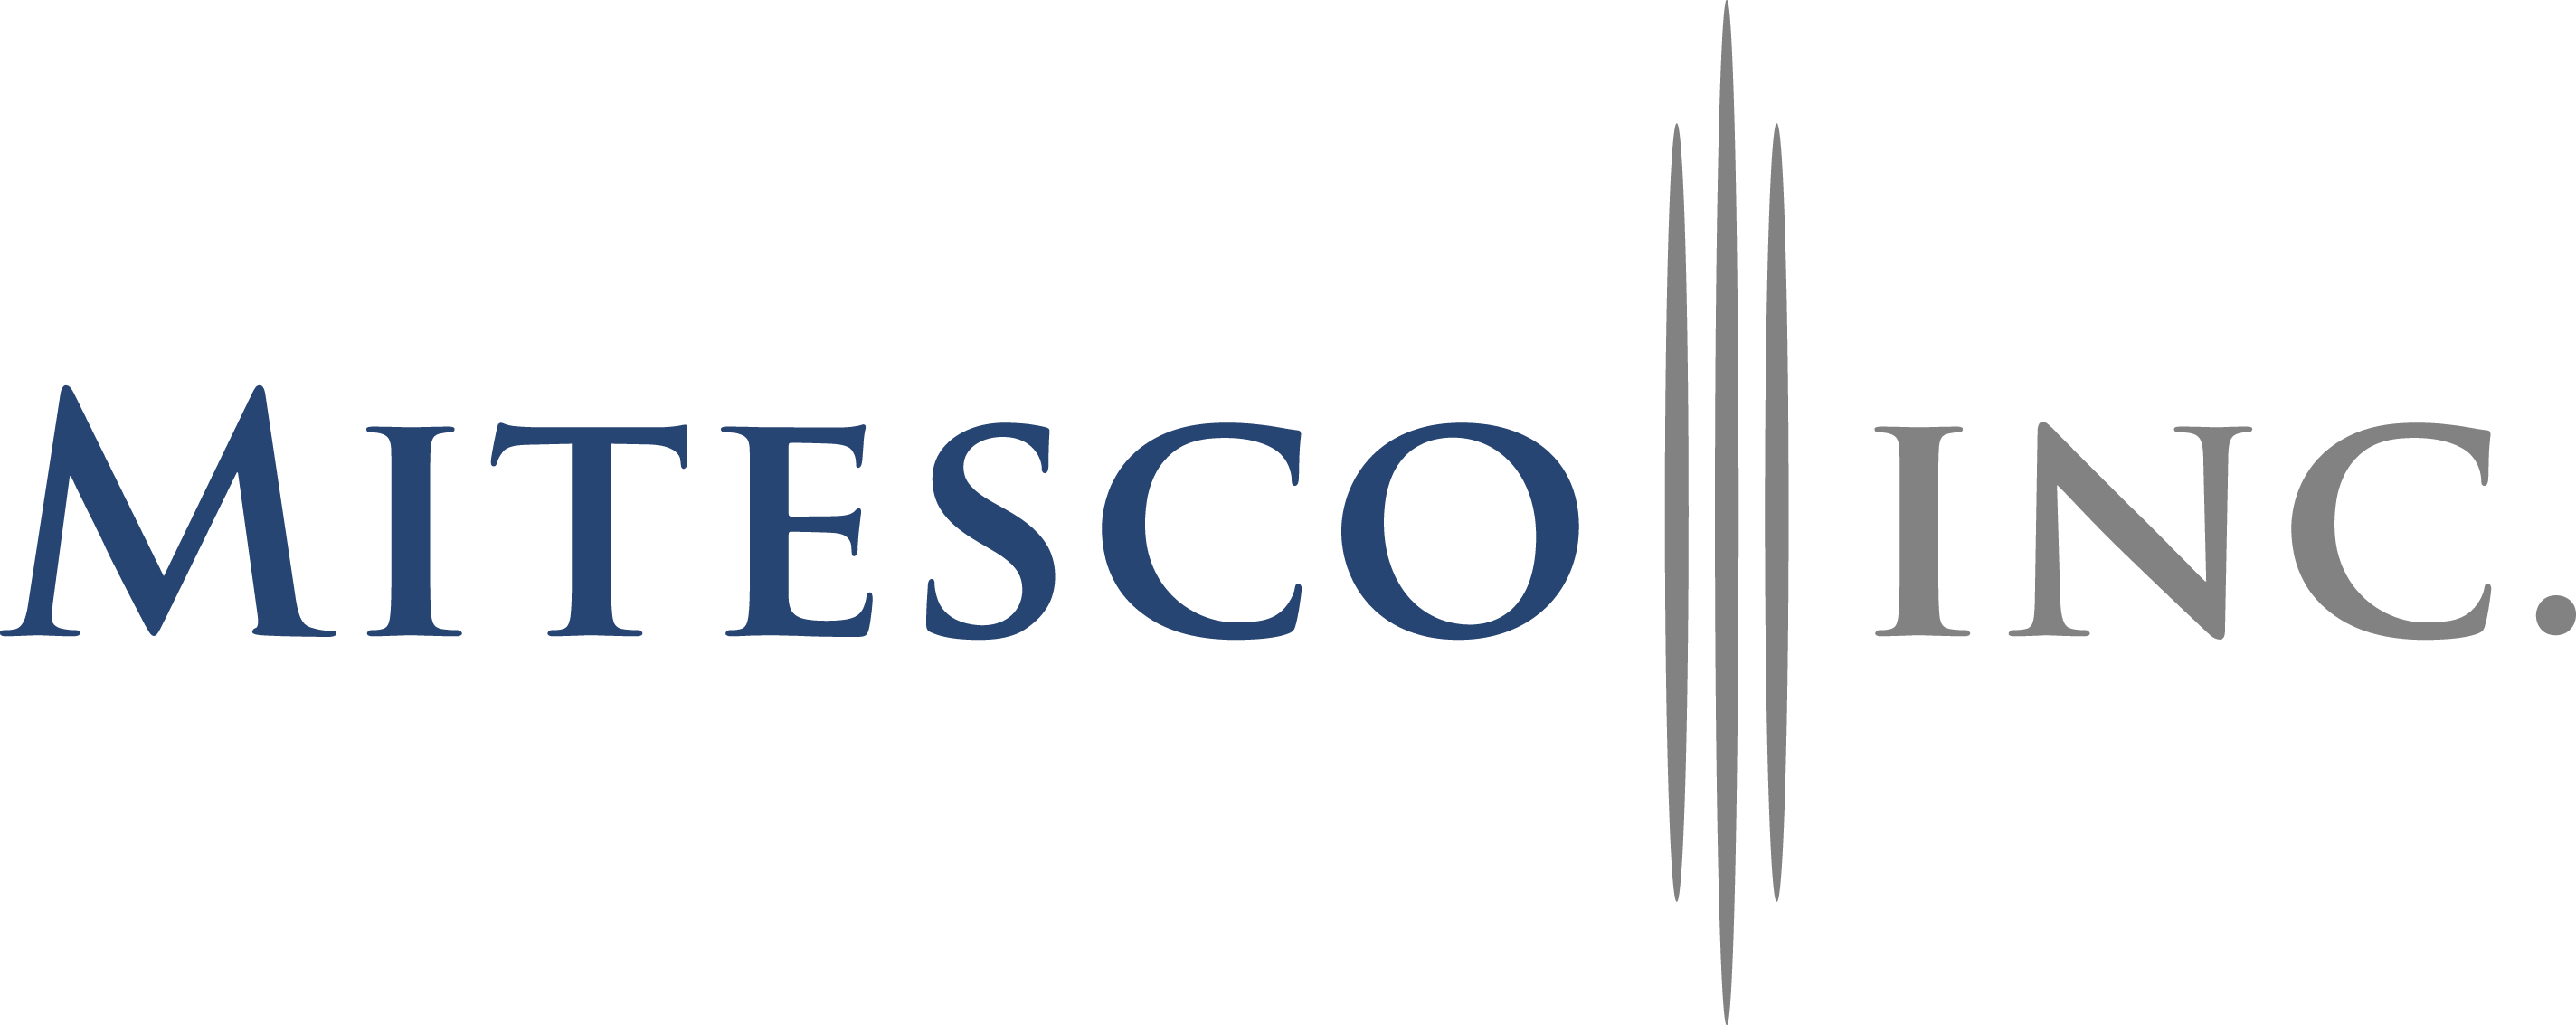 Mitesco Inc. (OTCQB:MITI)